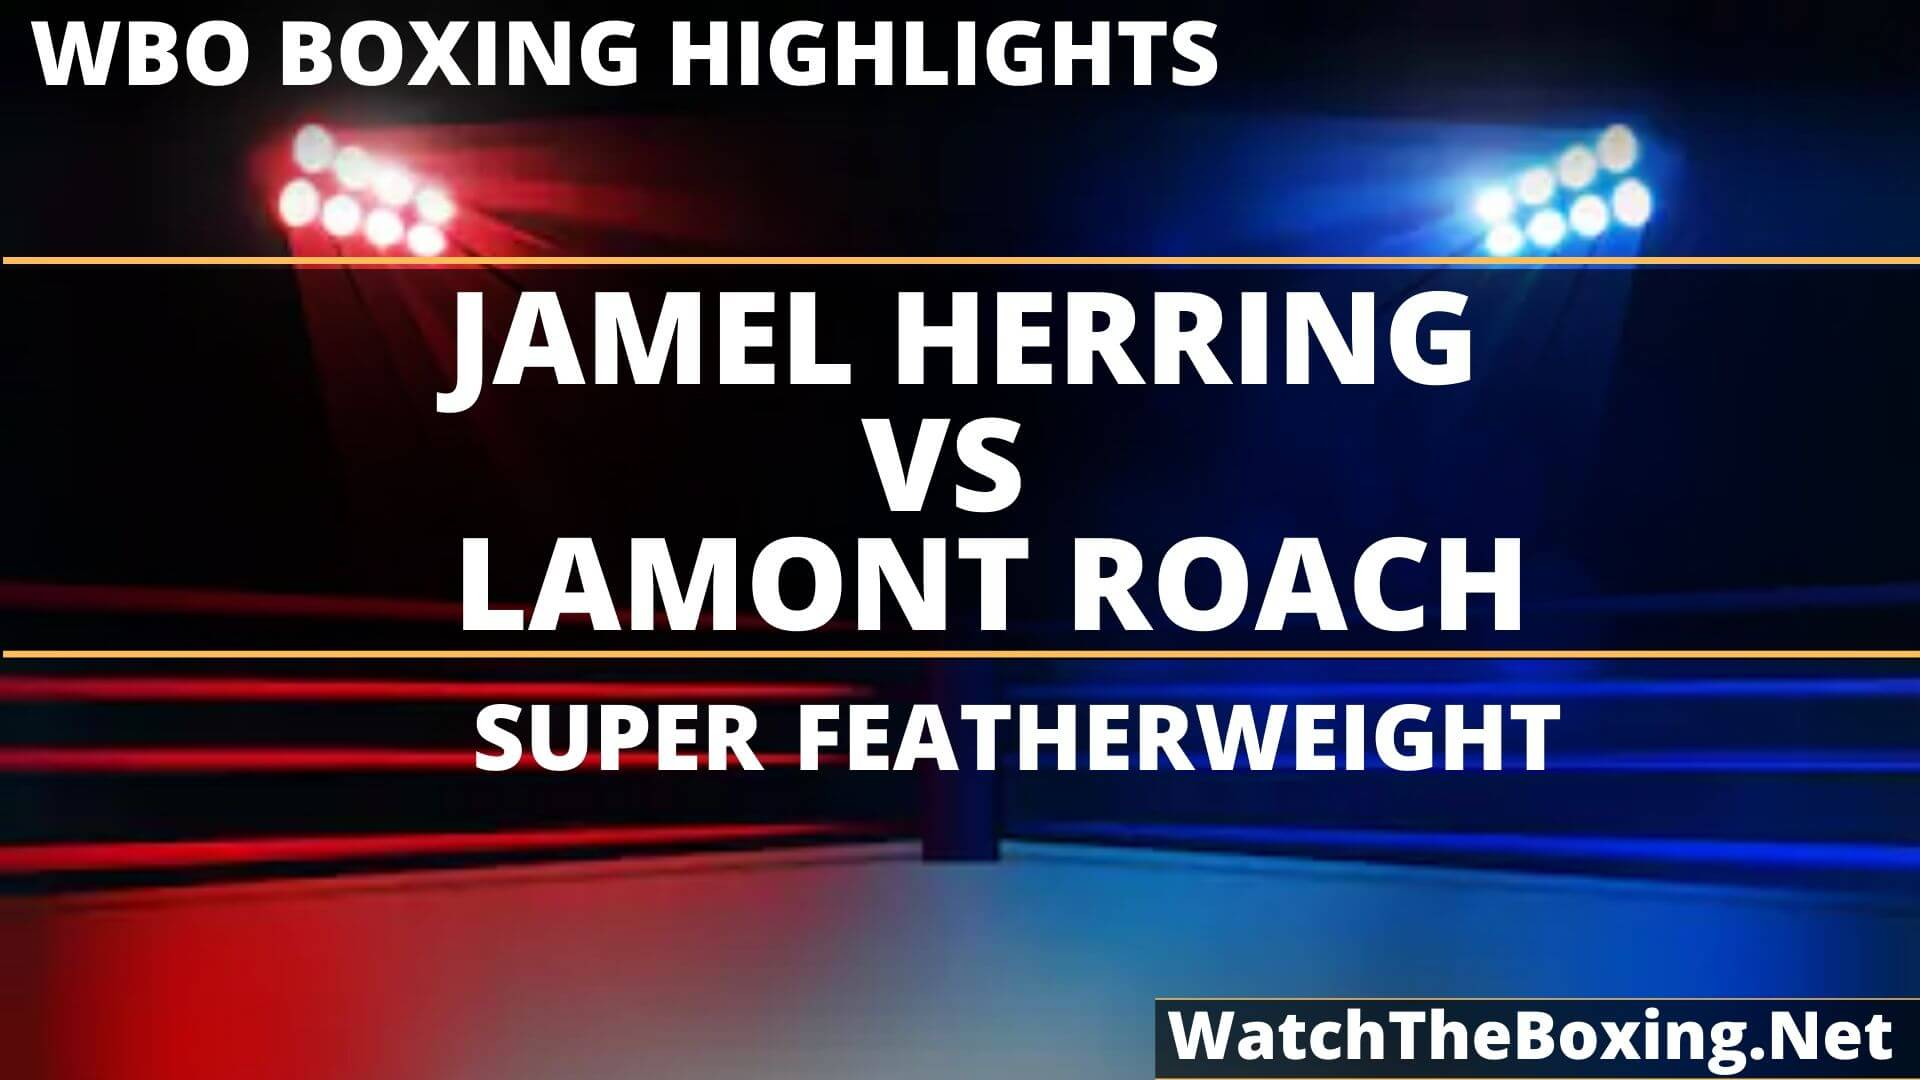 Jamel Herring Vs Lamont Roach Highlights 2019